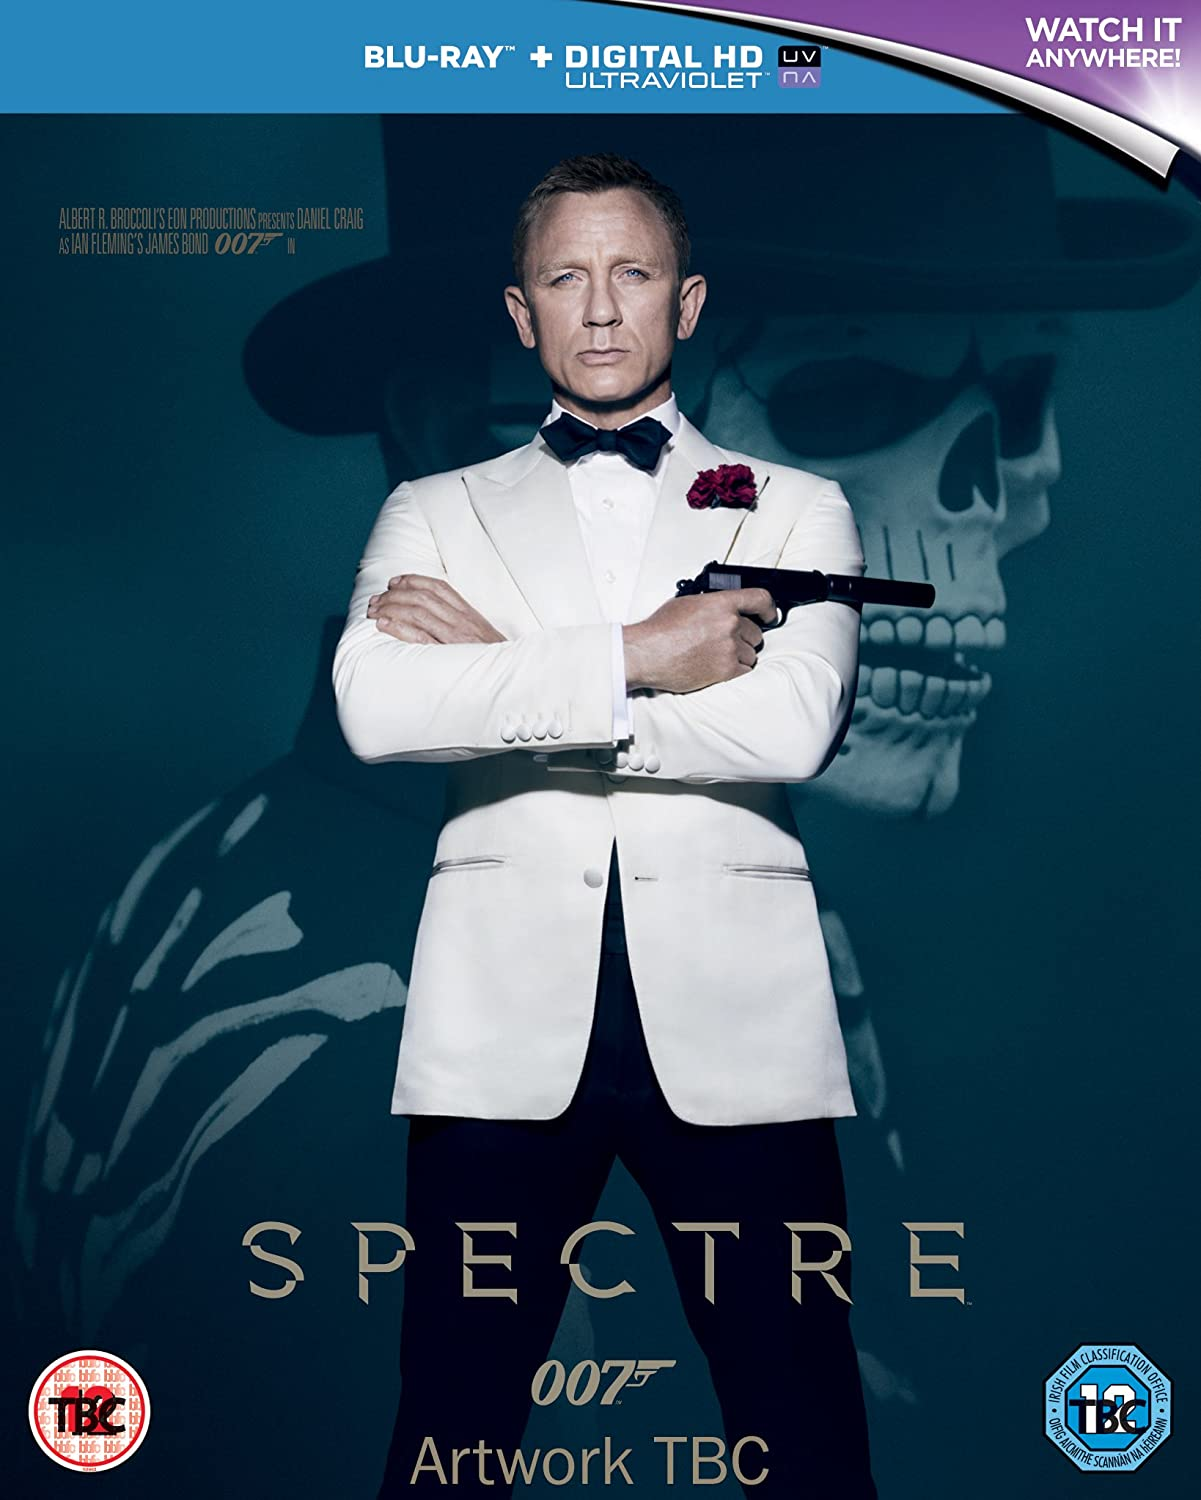 Spectre (2015) BluRay 720p 1.4GB [Hindi DD 5.1 – English DD 5.1] MKV